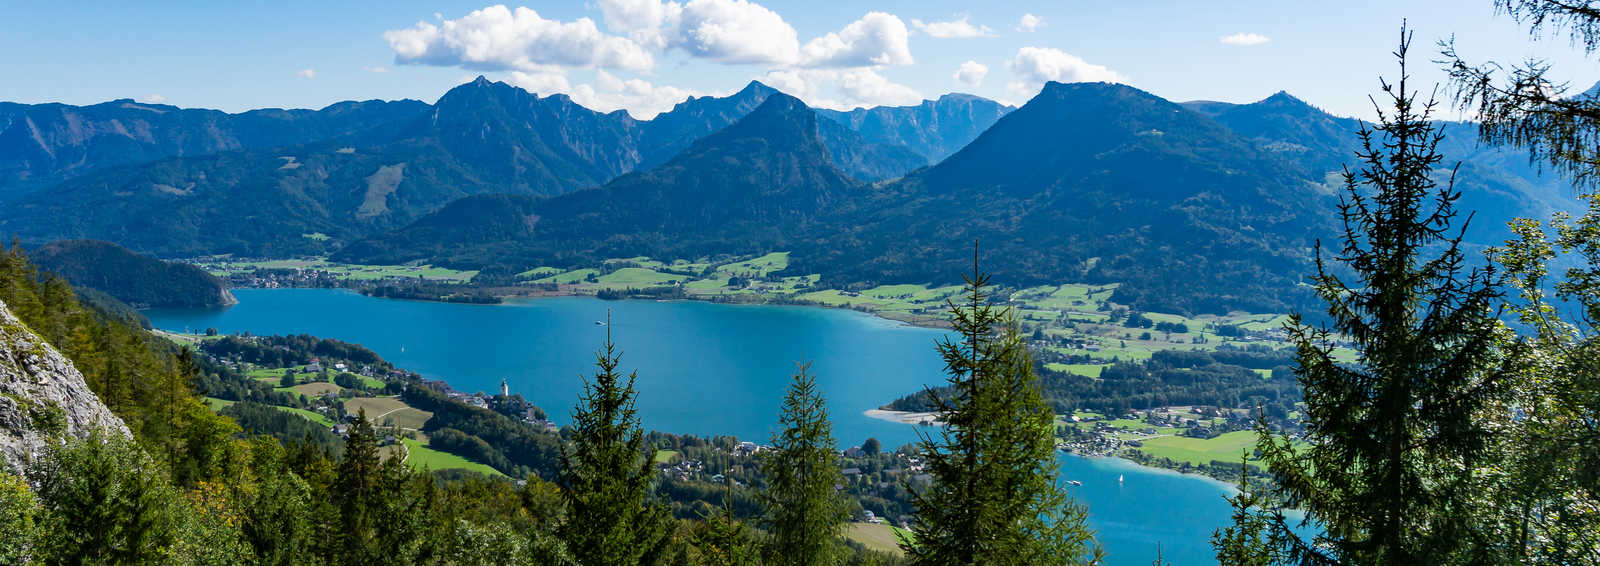 Aerial view of Wolfgangsee lake from Schafberg, Salzkammergut, Austria